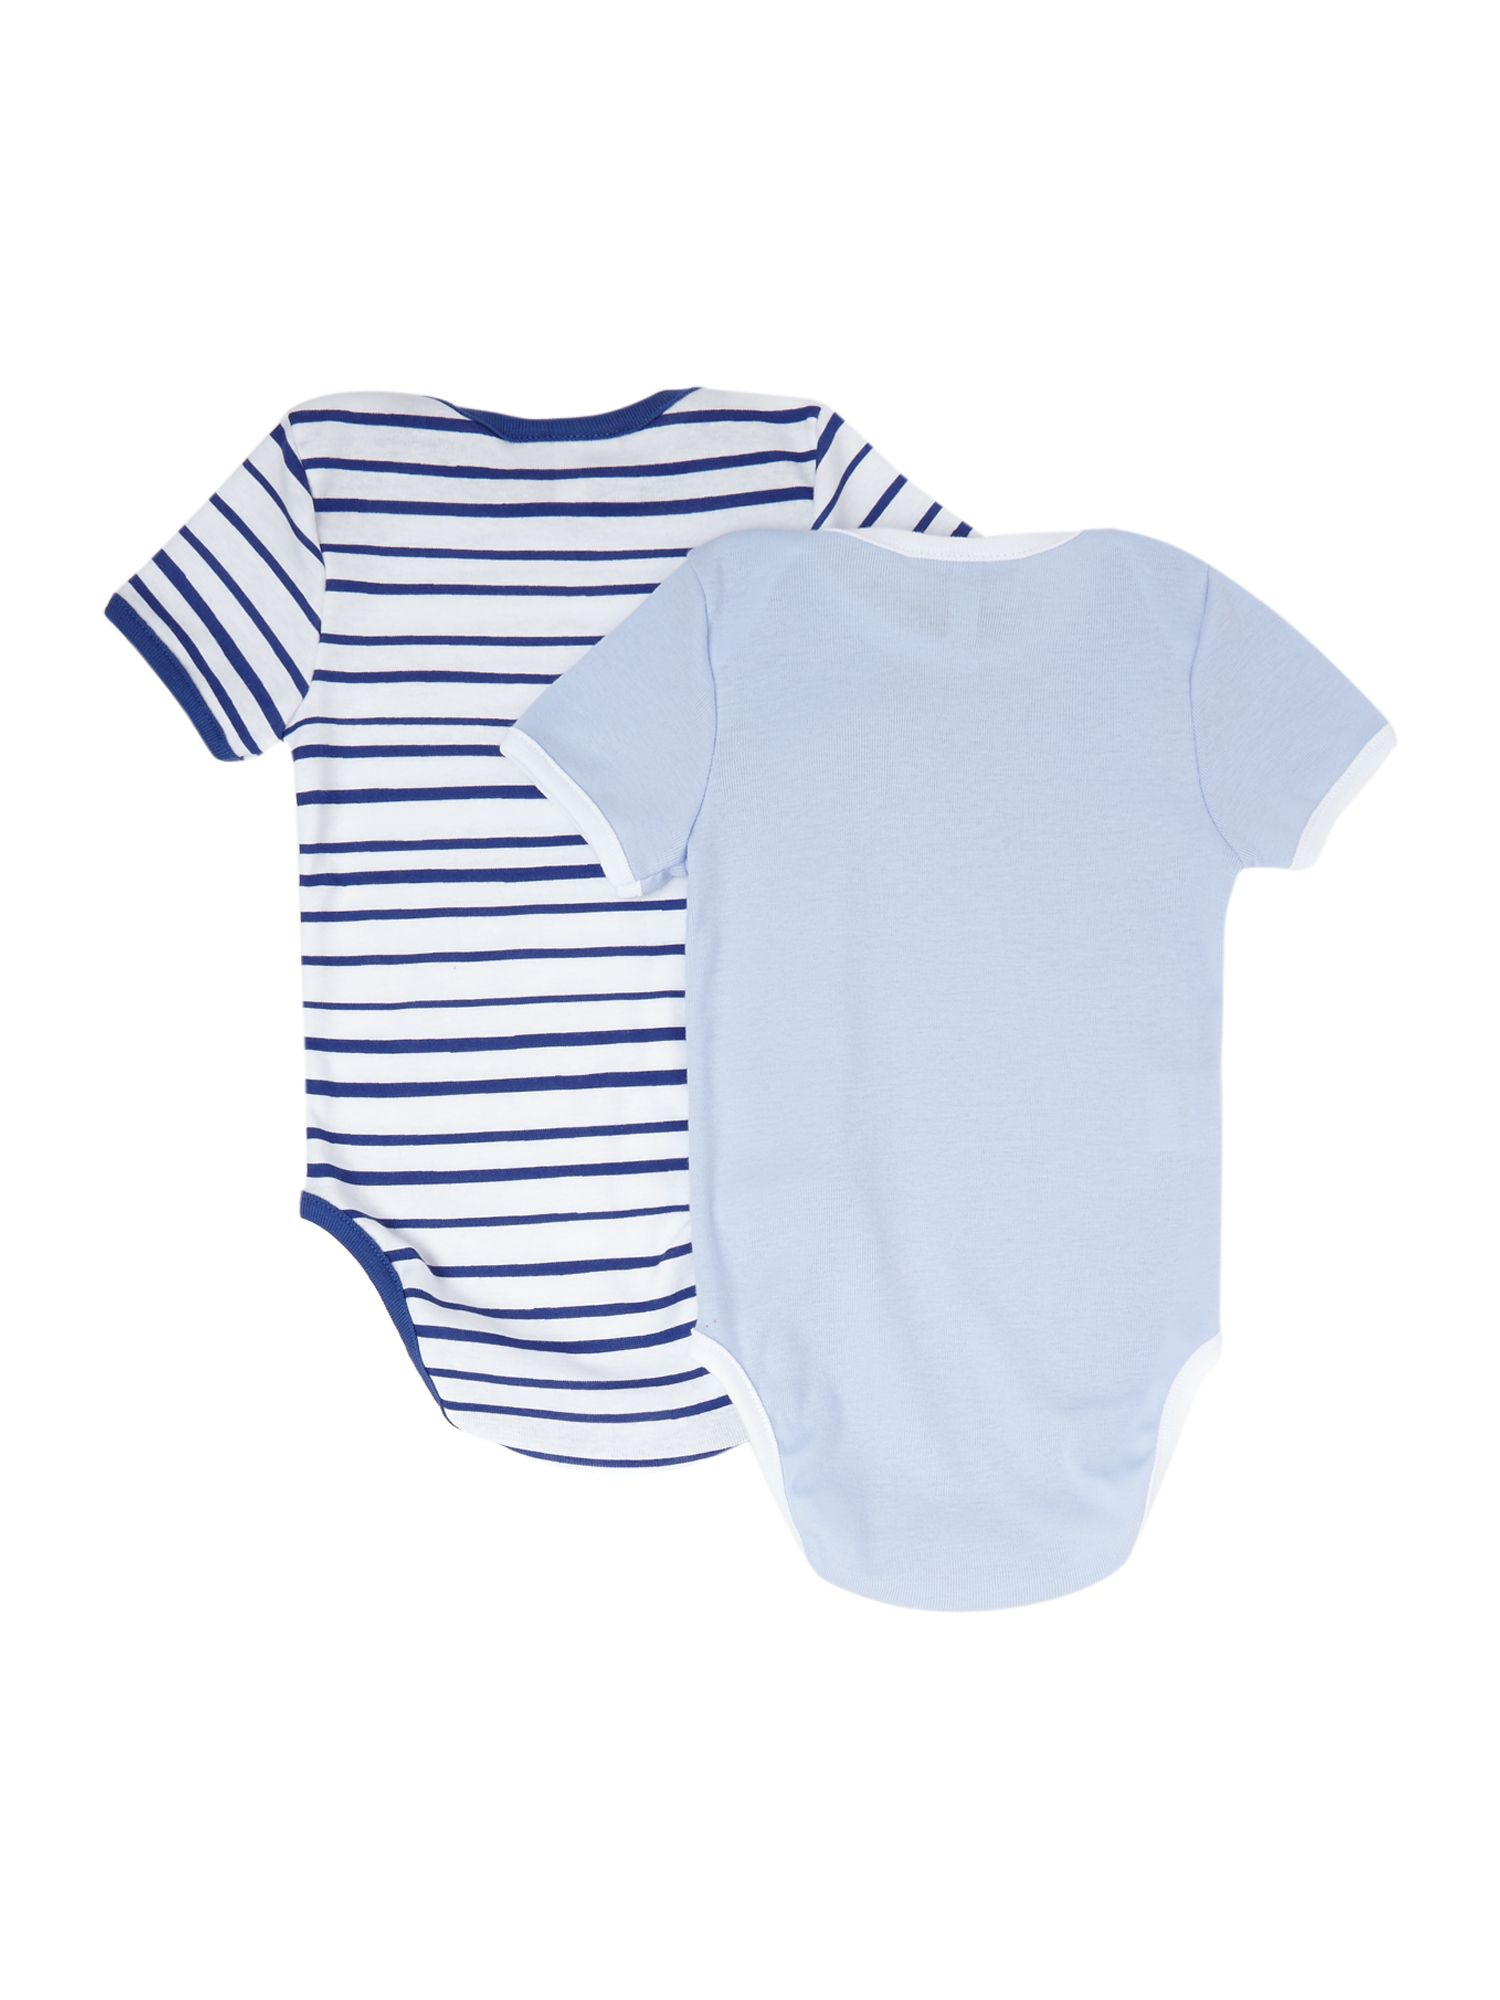 Baby 2 pack boxed bodysuits